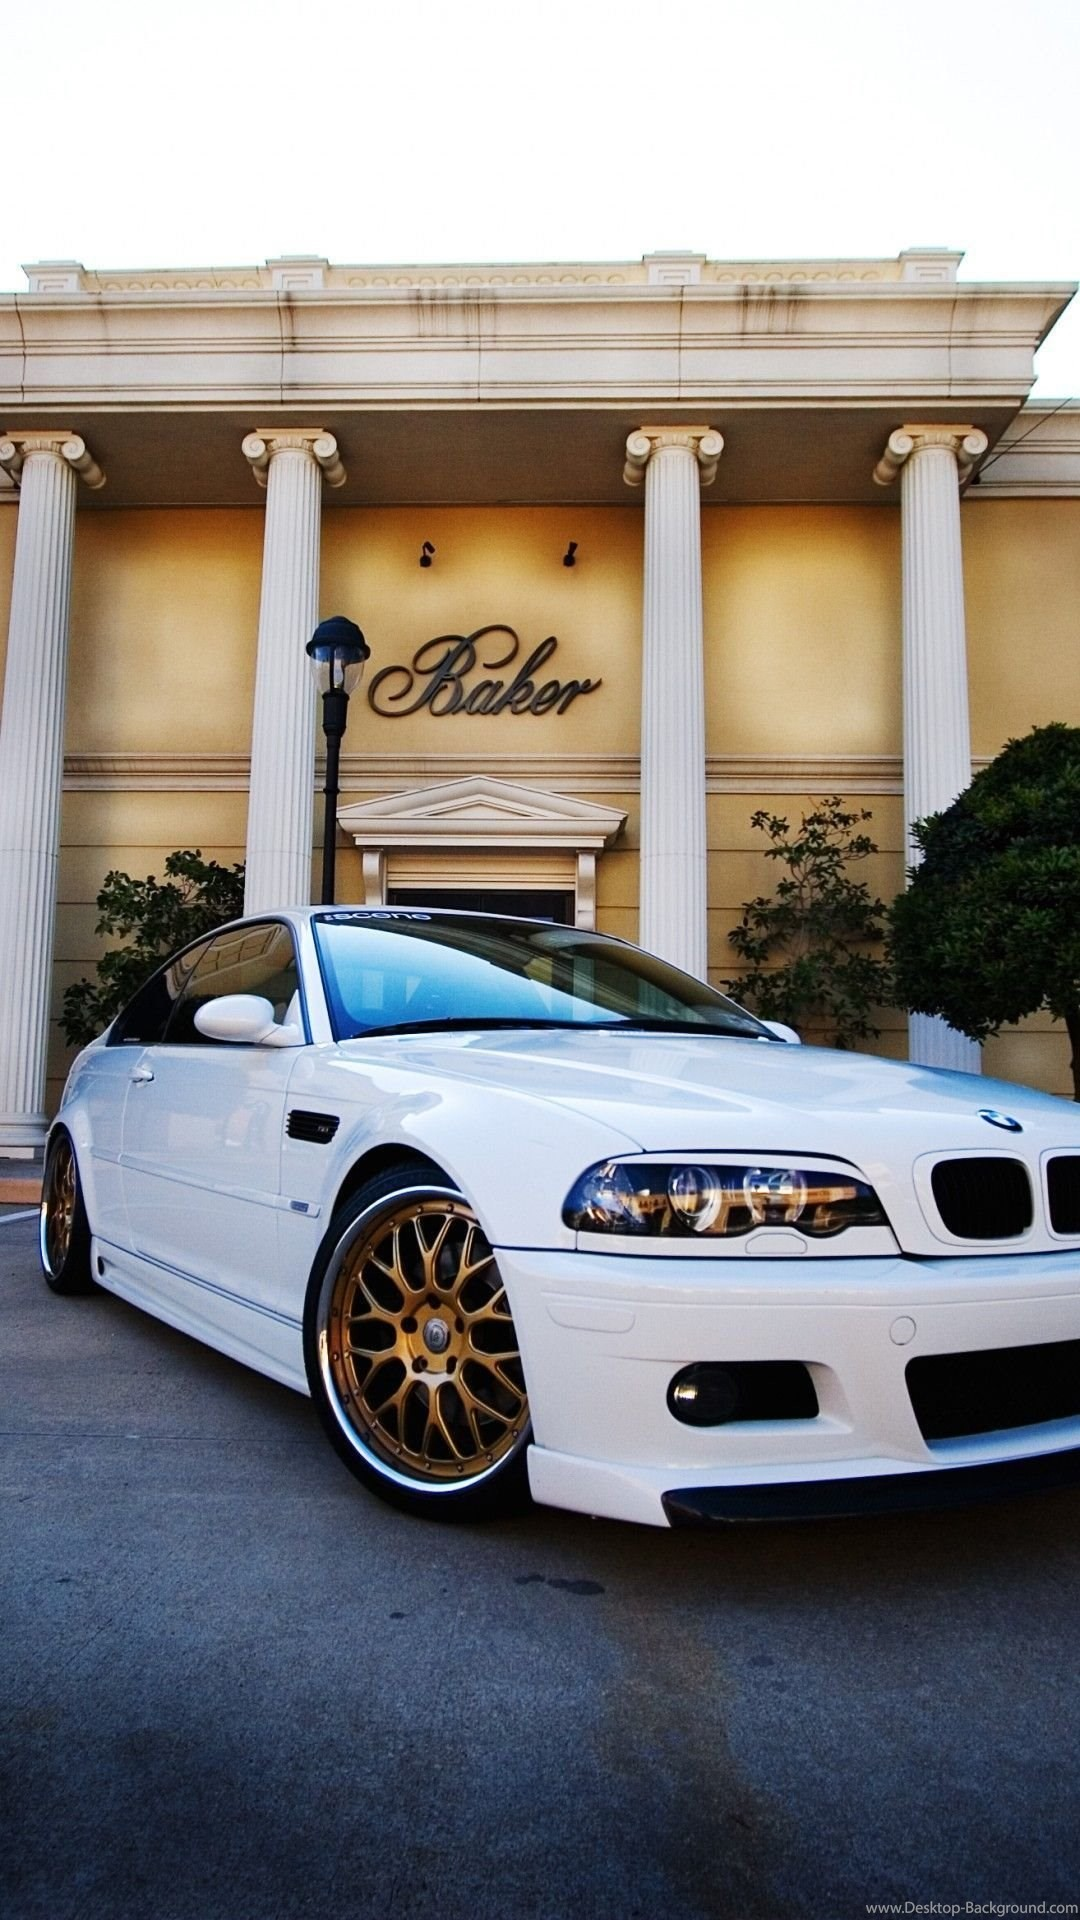 1080x1920 White BMW E46 M3 iPhone 6 Plus Wallpapers HD Wallpapers Desktop Background